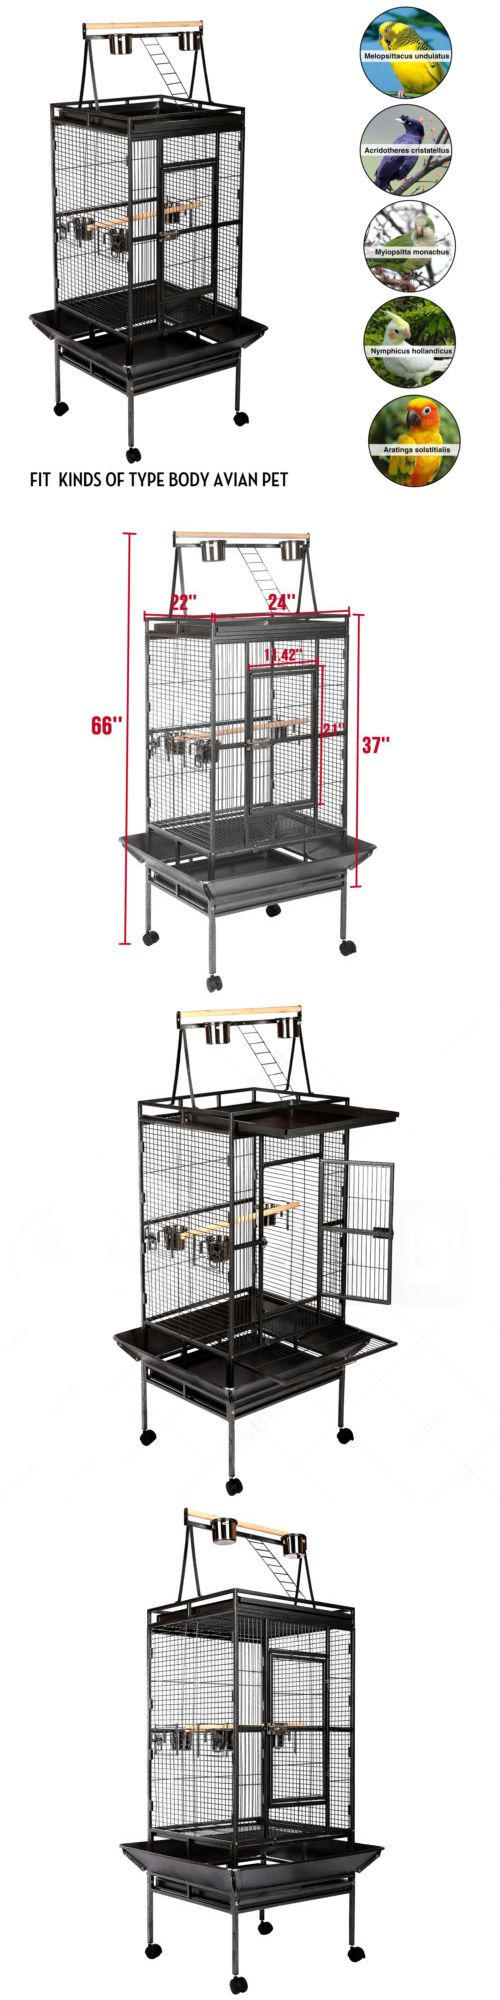 Cages 46289: 68 Large Bird Cage Play Top Parrot Finch Cage Pet Supplies Perch Macaw House -> BUY IT NOW ONLY: $107.9 on eBay!